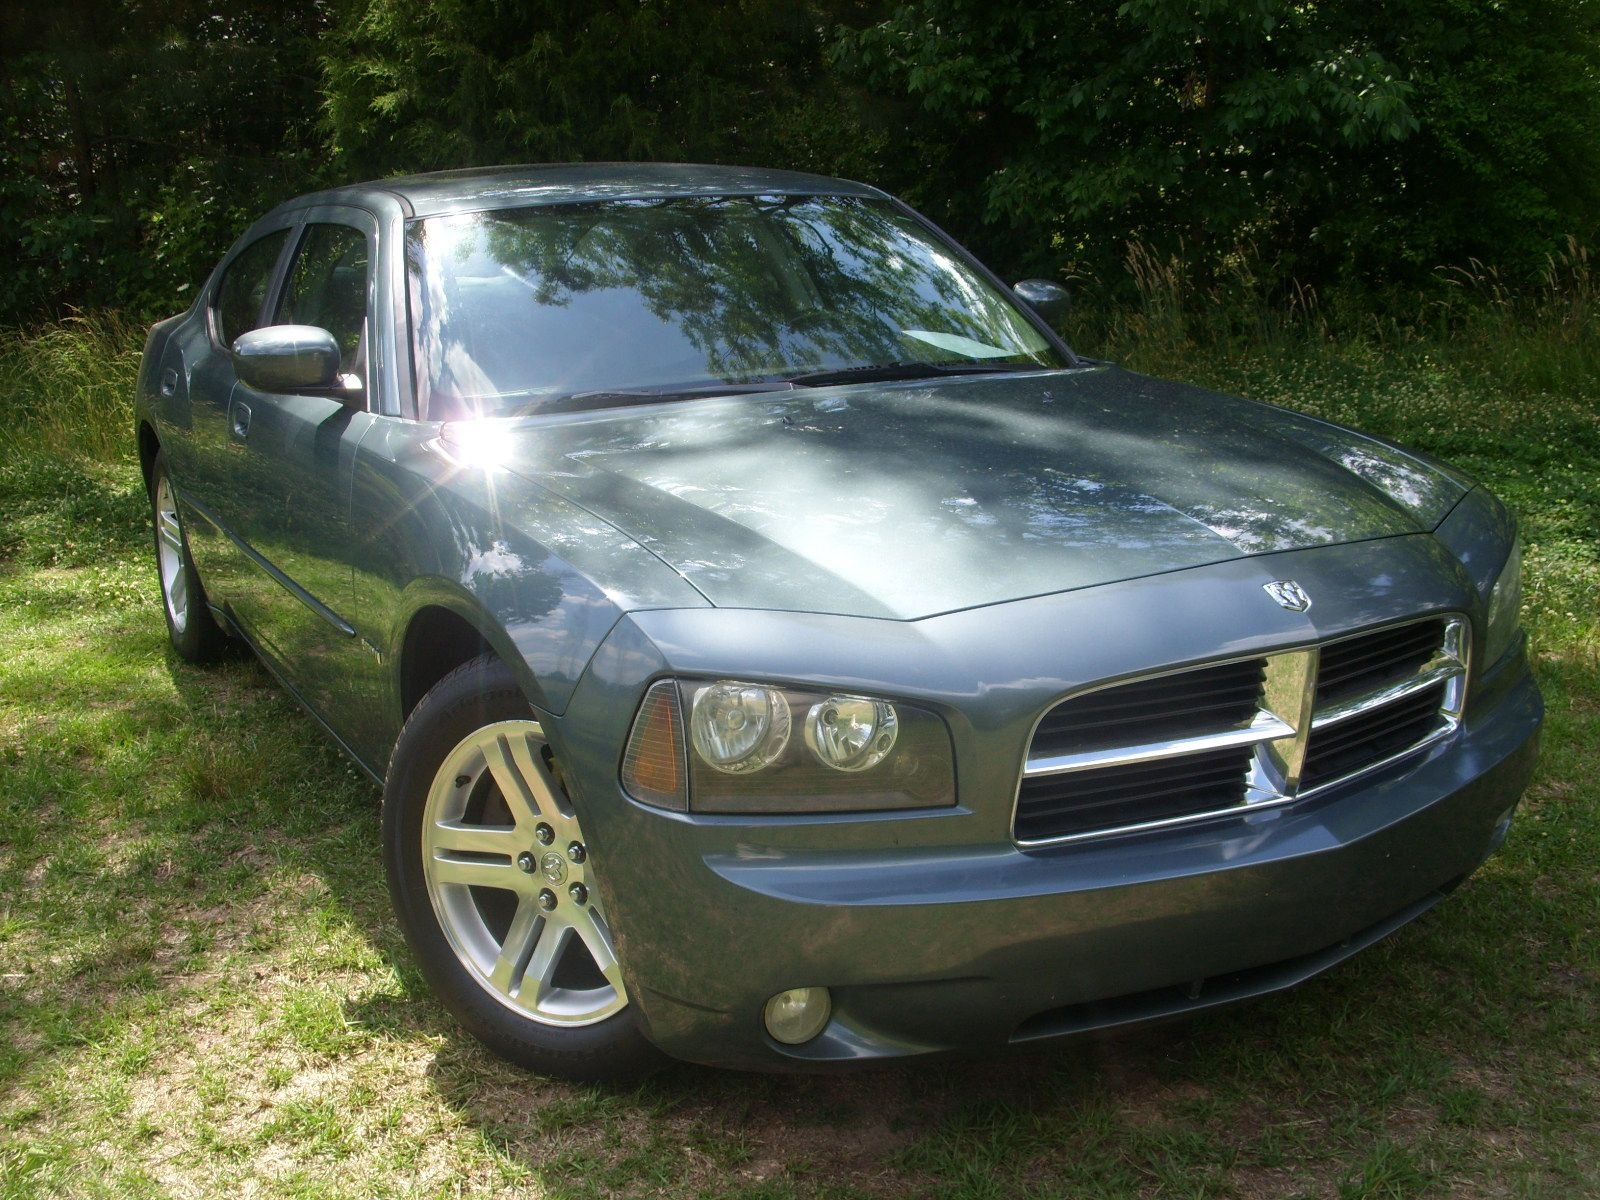 Used 2006 Dodge Charger For Sale | Durham NC | 1963 Chevrolet Impala